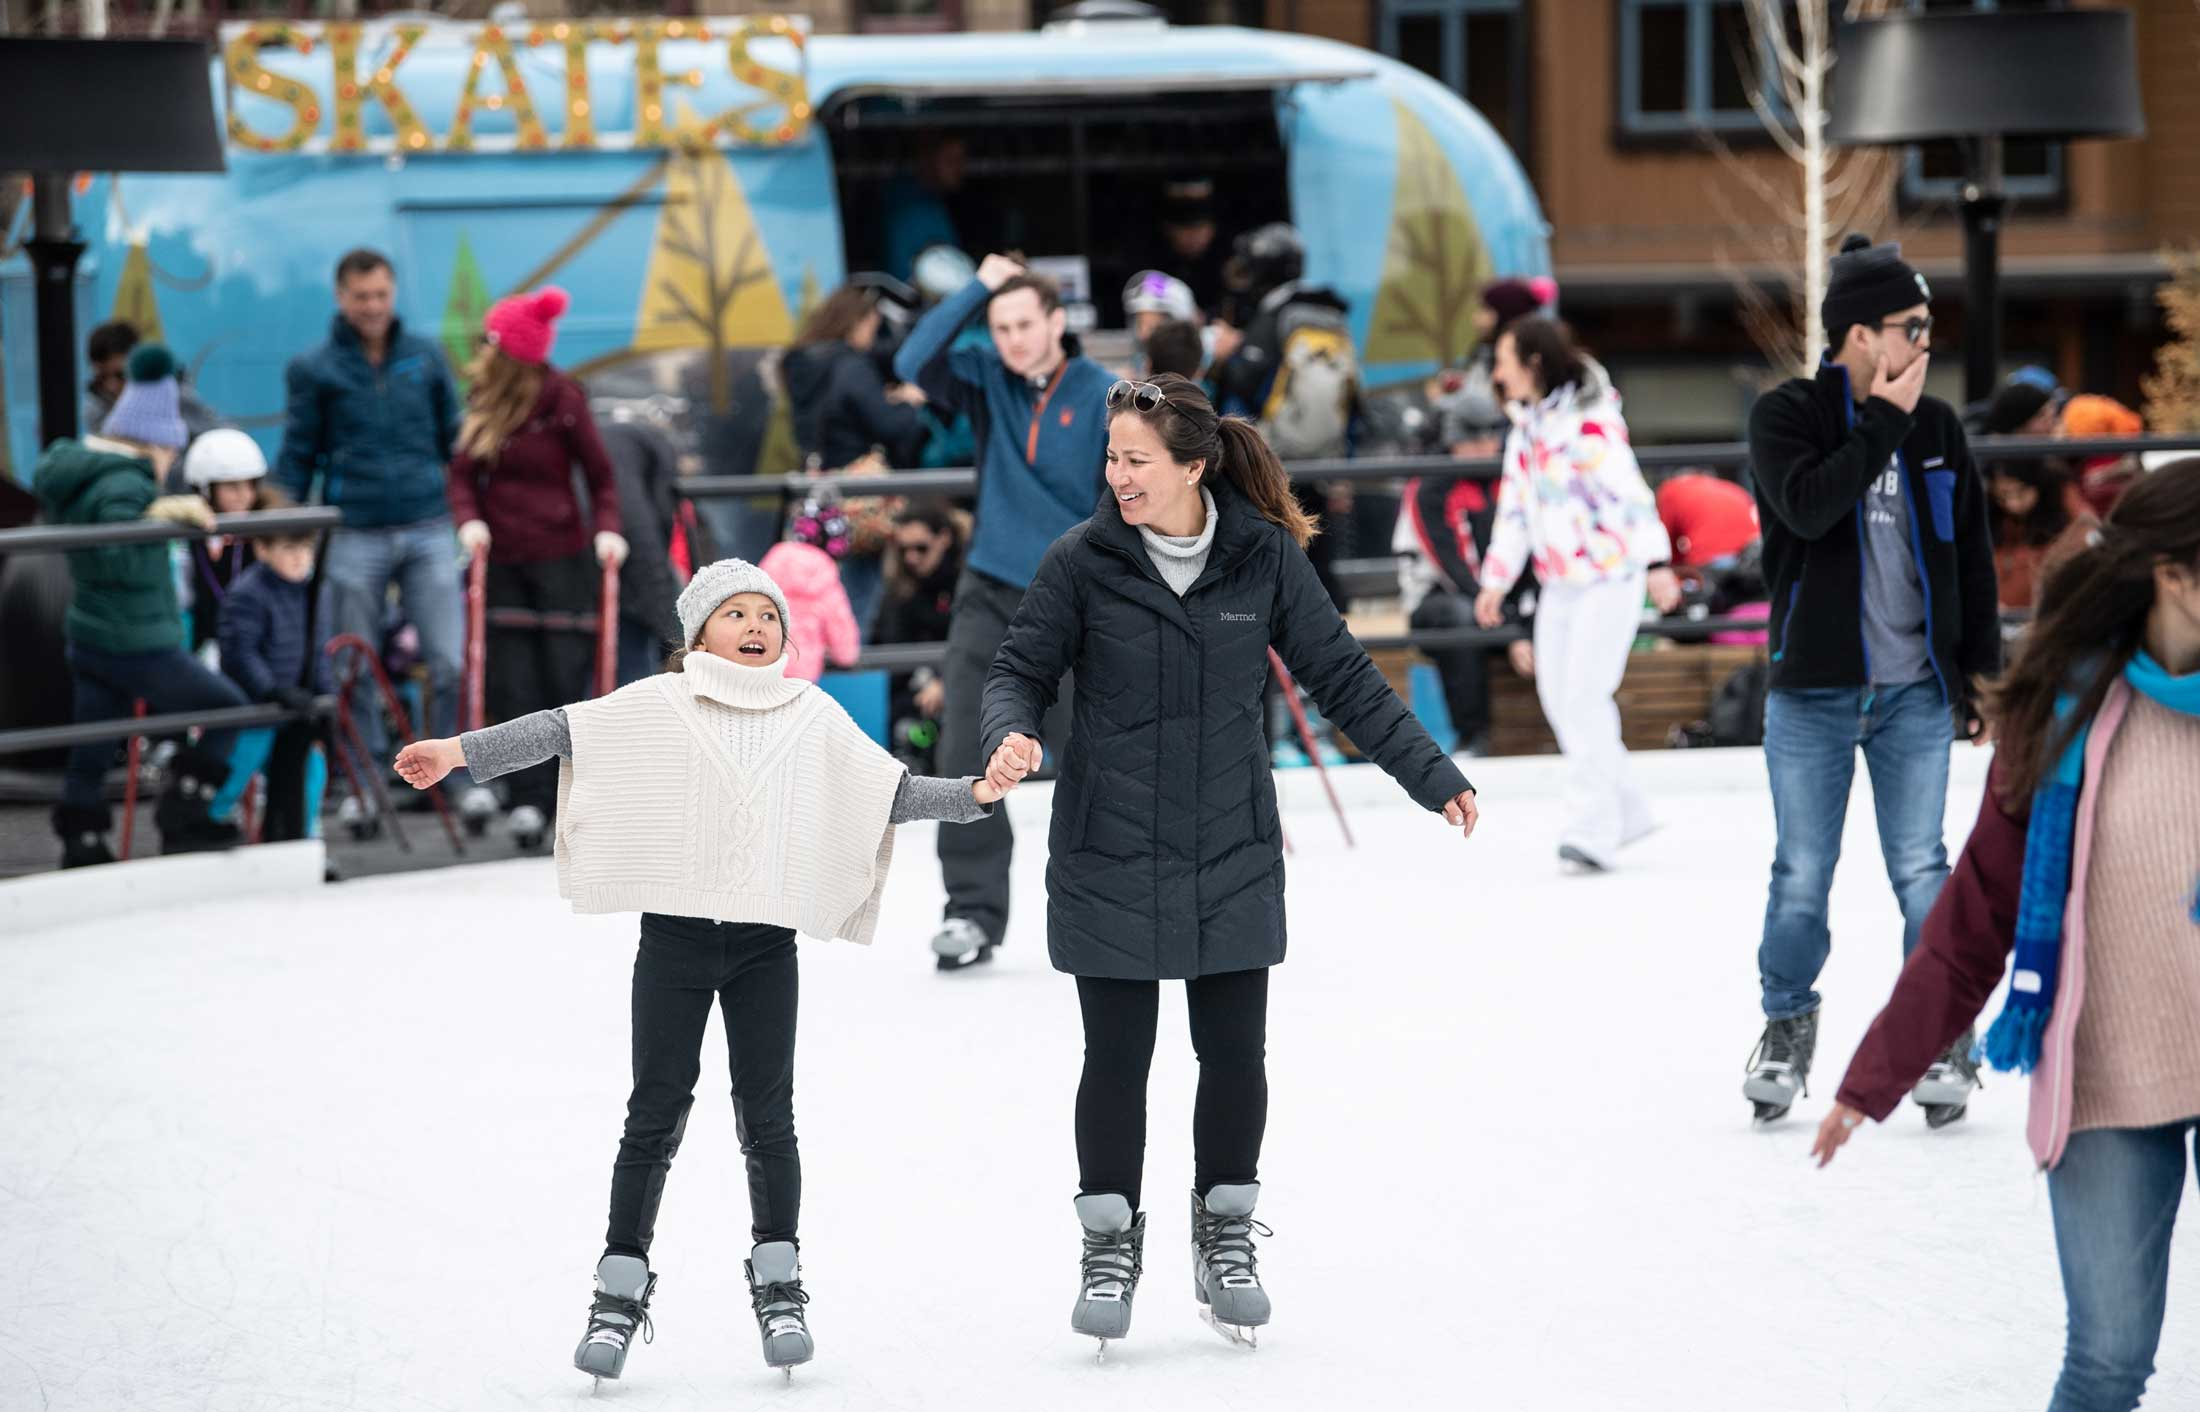 Outdoor skating in the heart of the Base Village